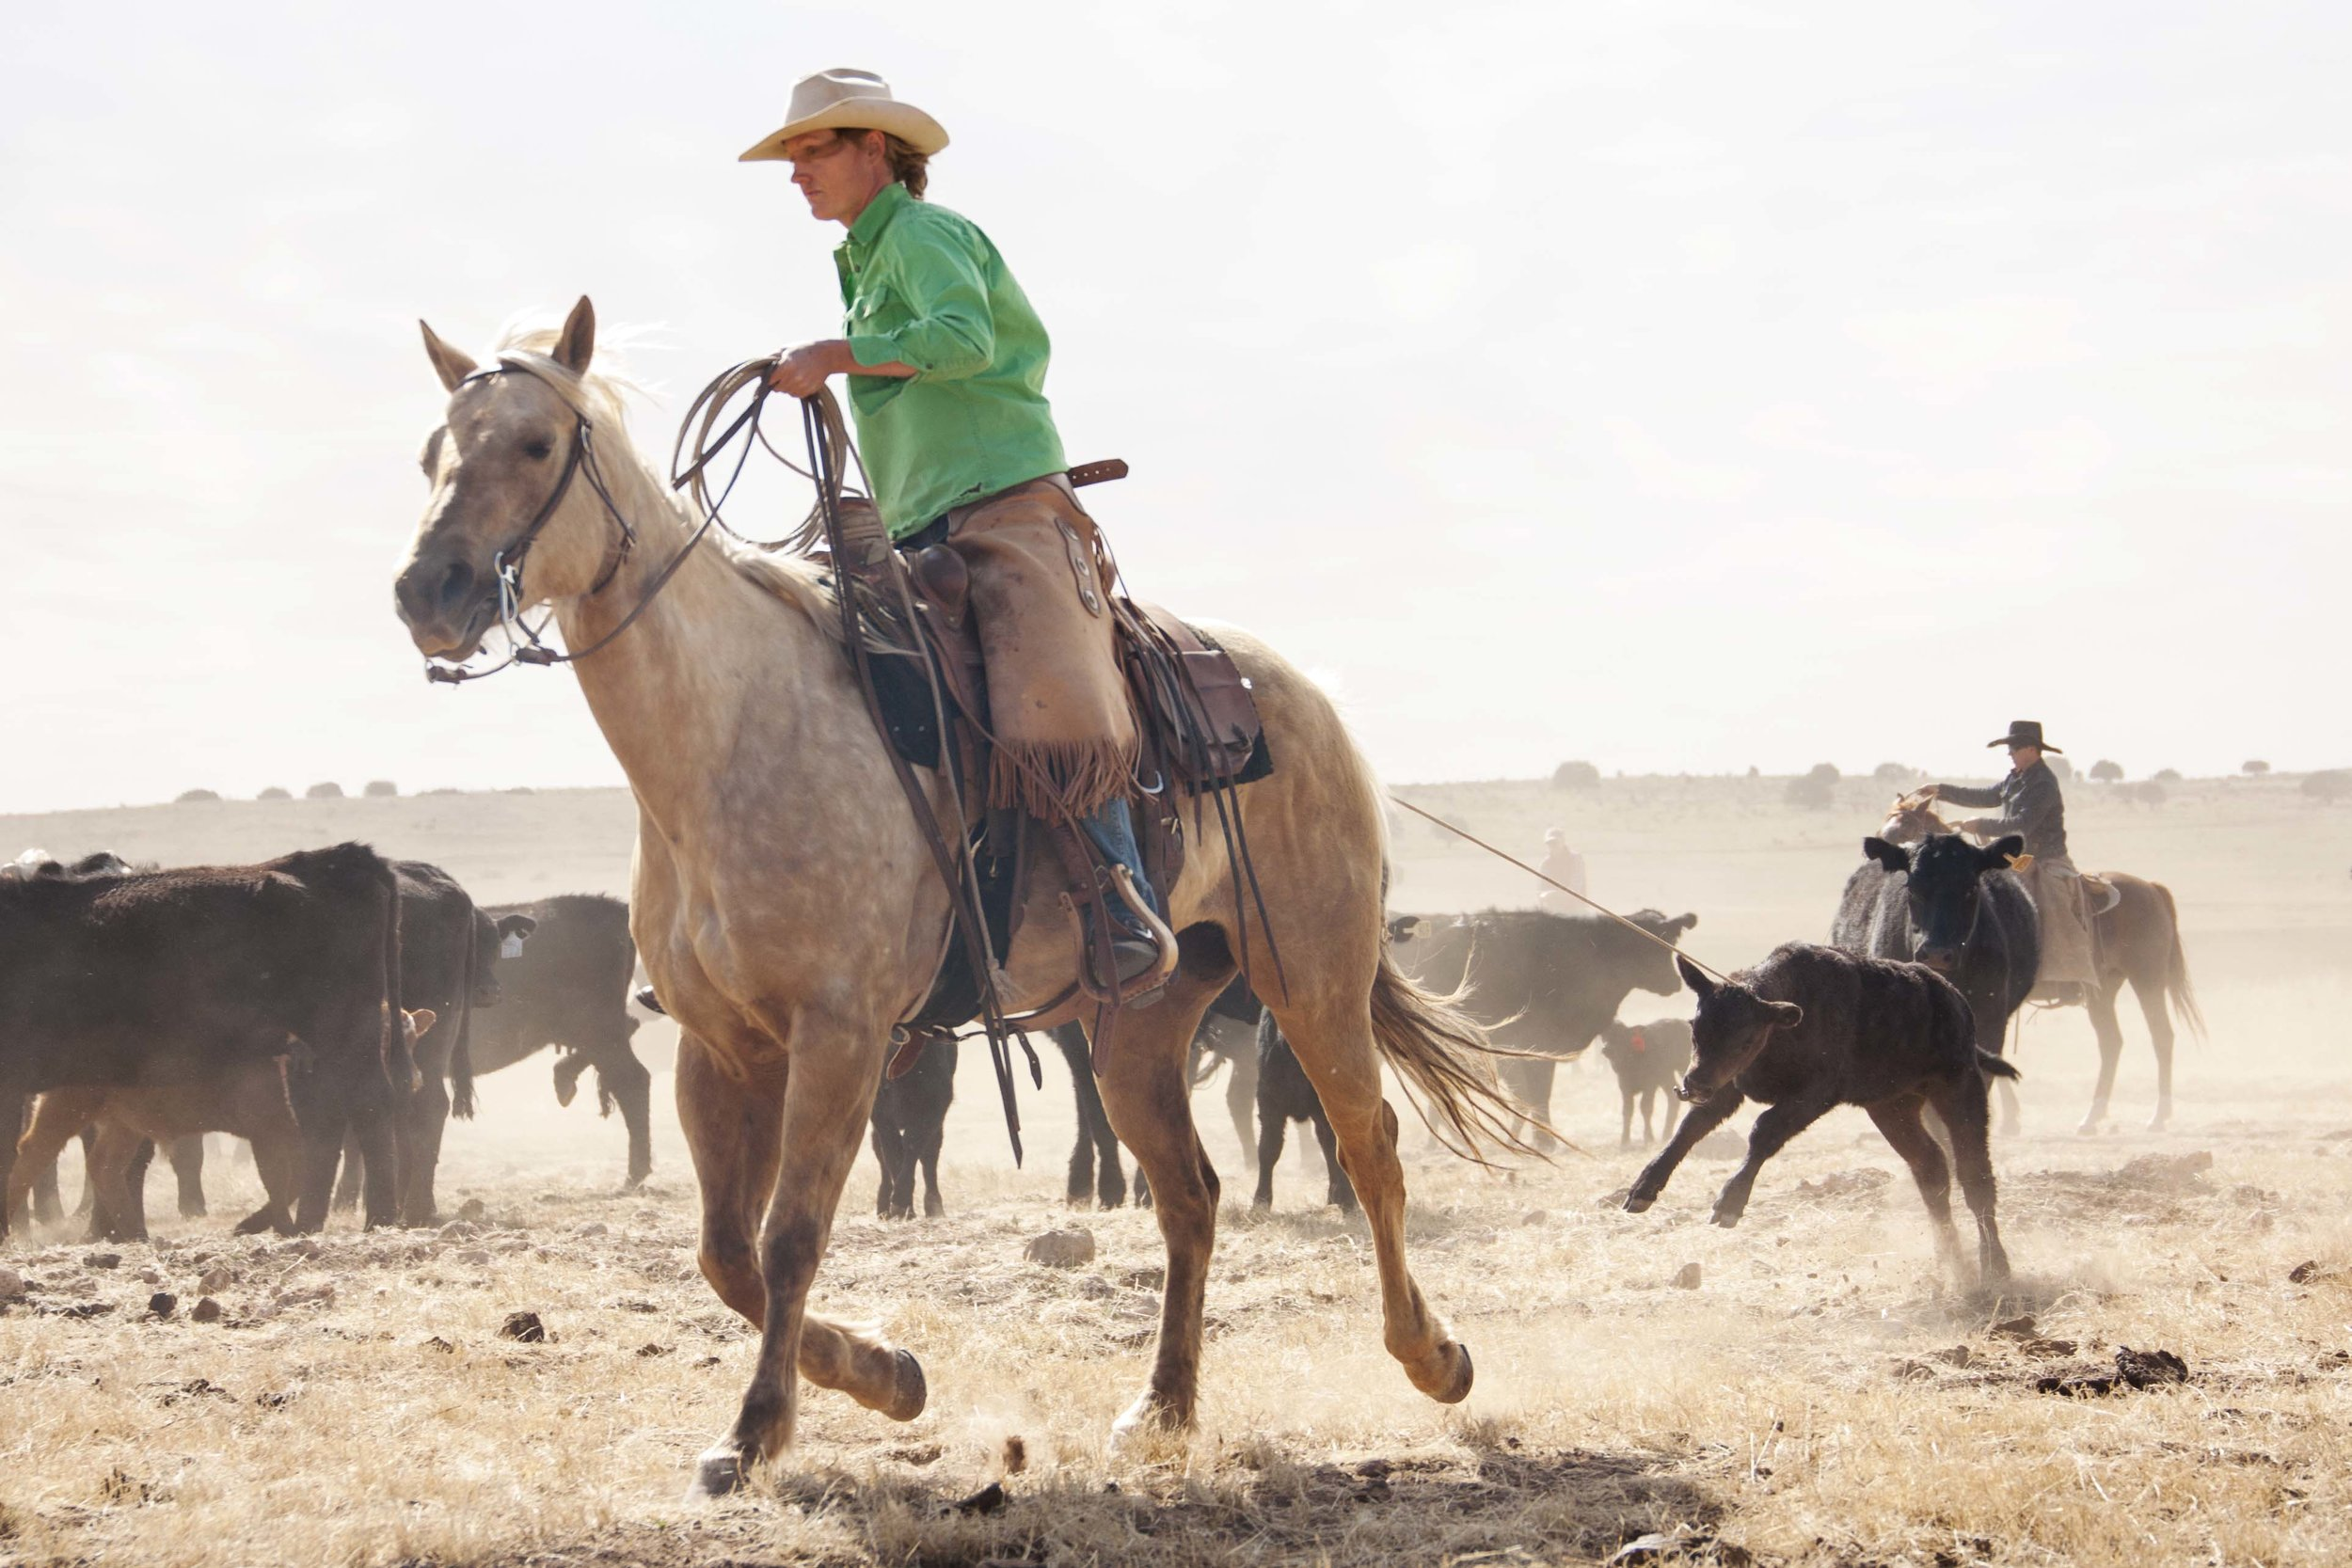 Amy Wright, ranch manager, bringing a calf to the branding fire